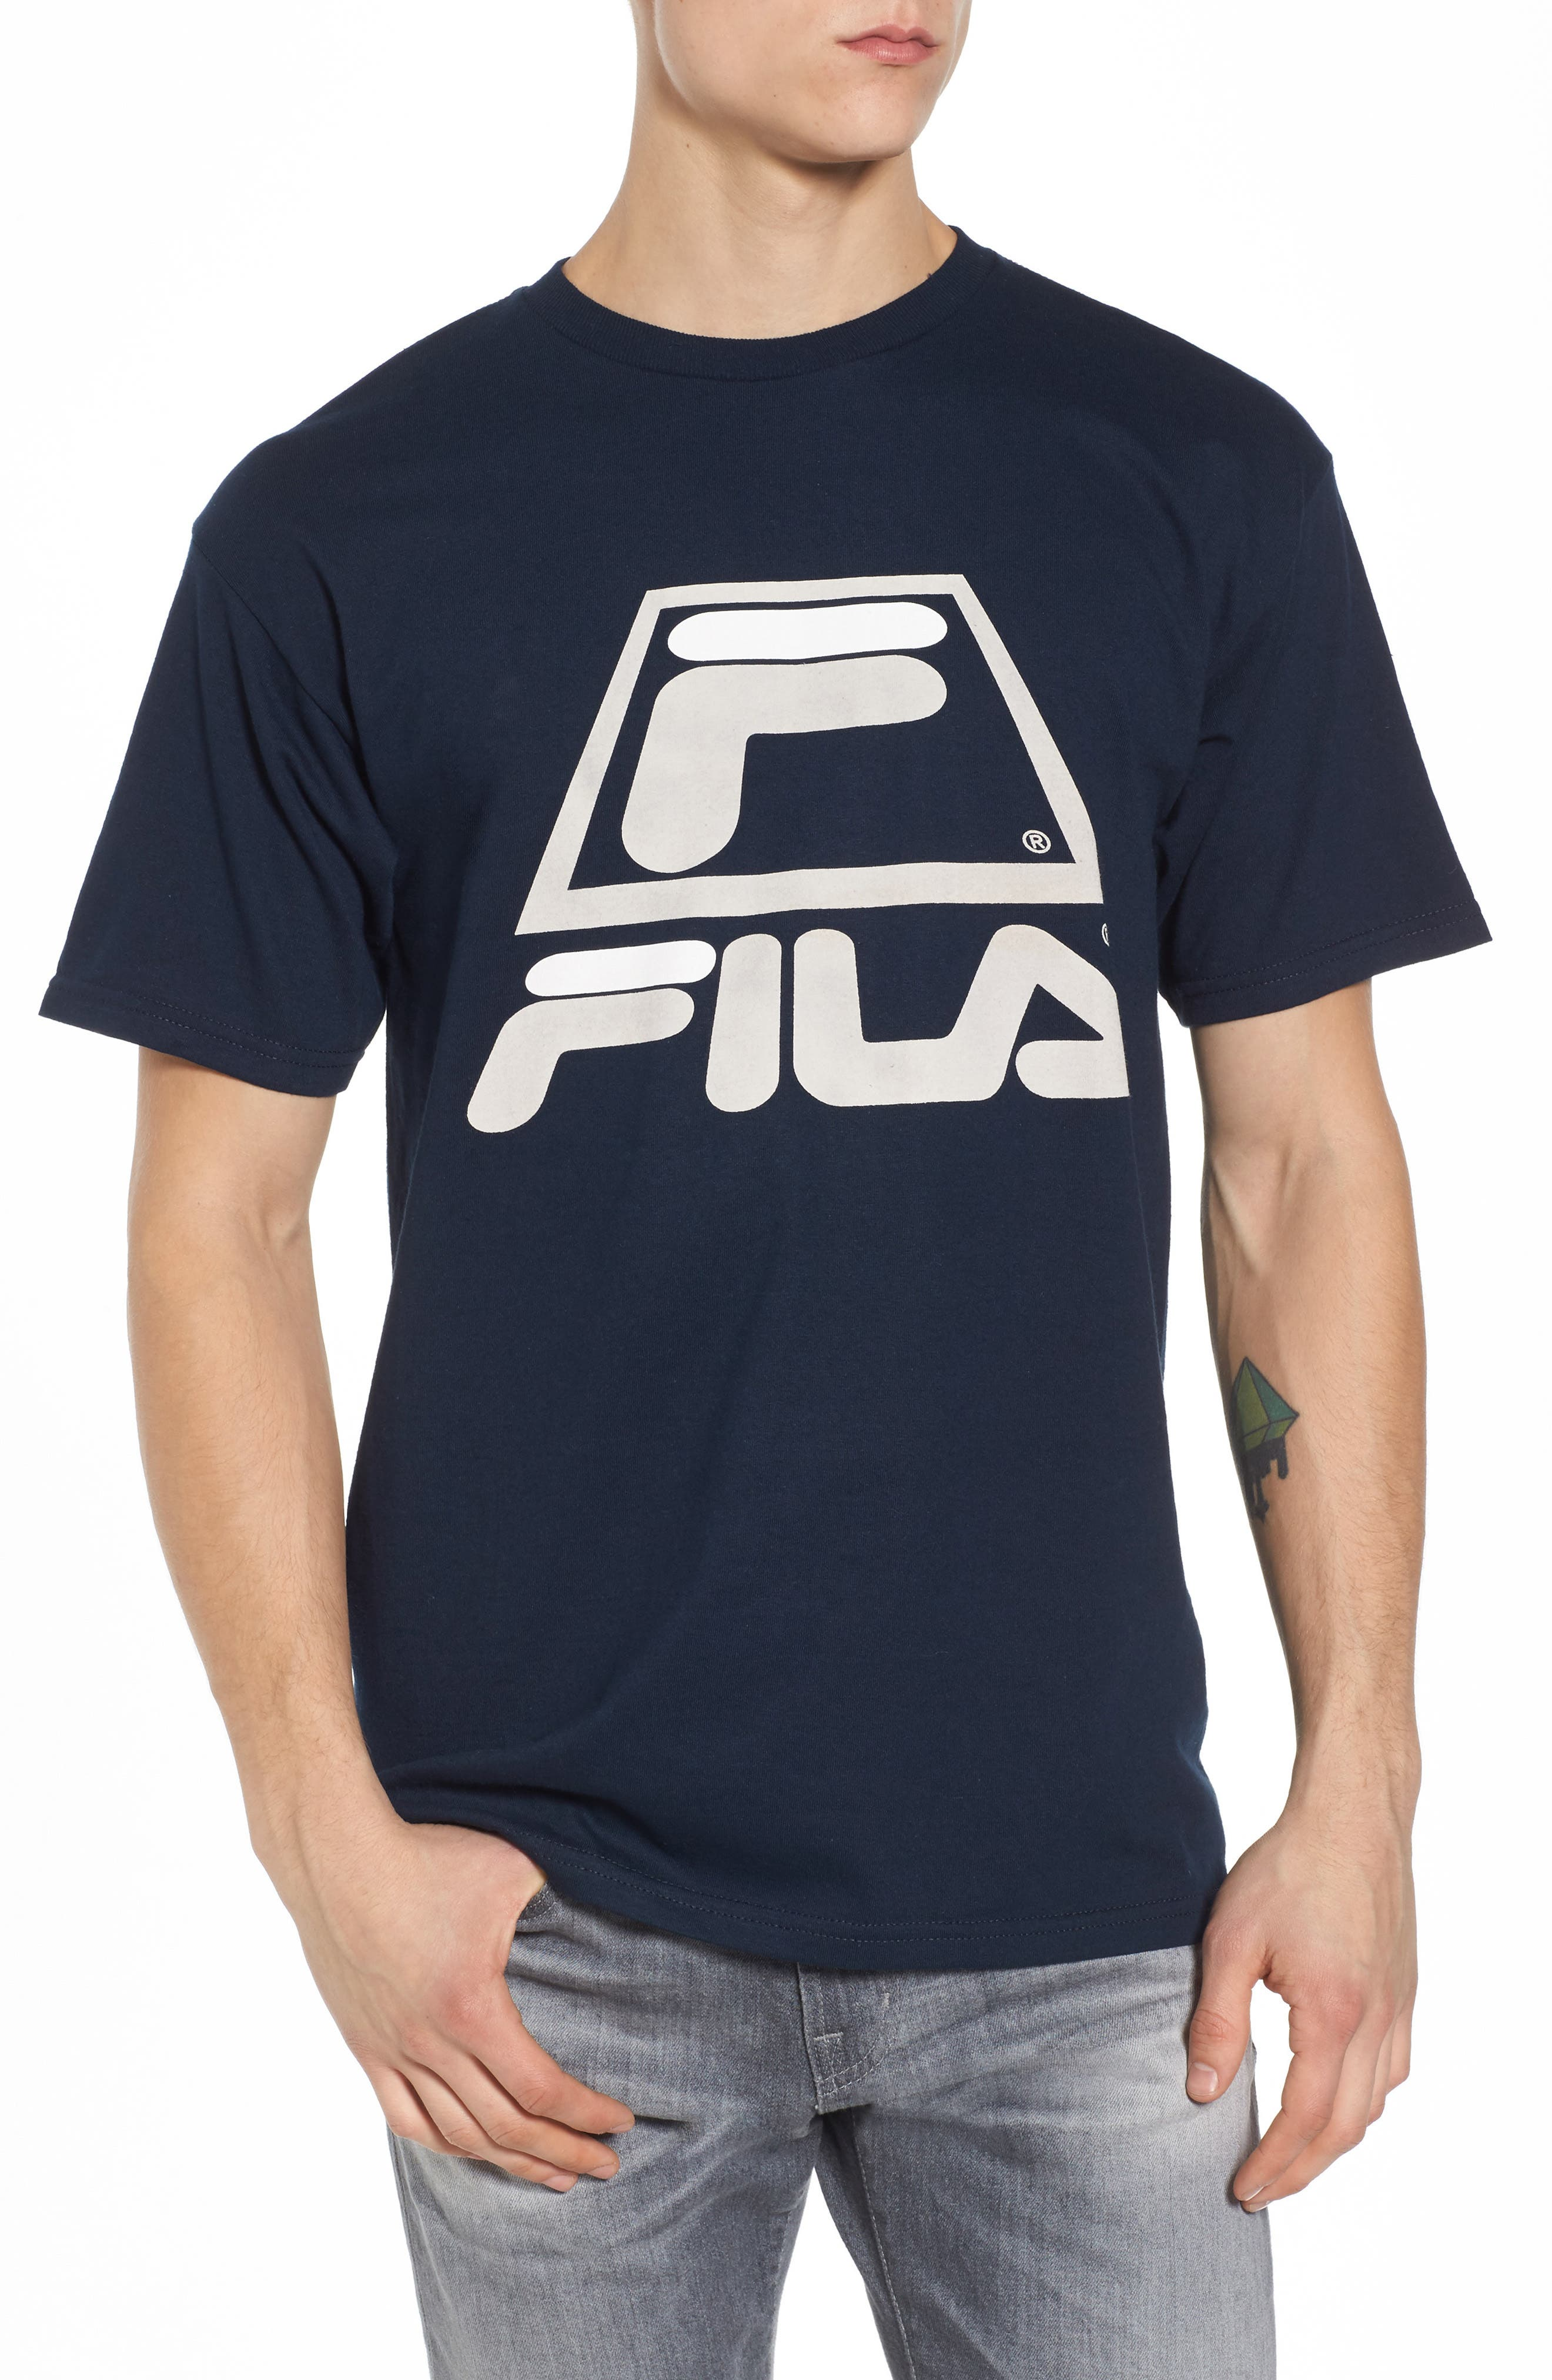 Alternate Image 1 Selected - FILA '95 T-Shirt